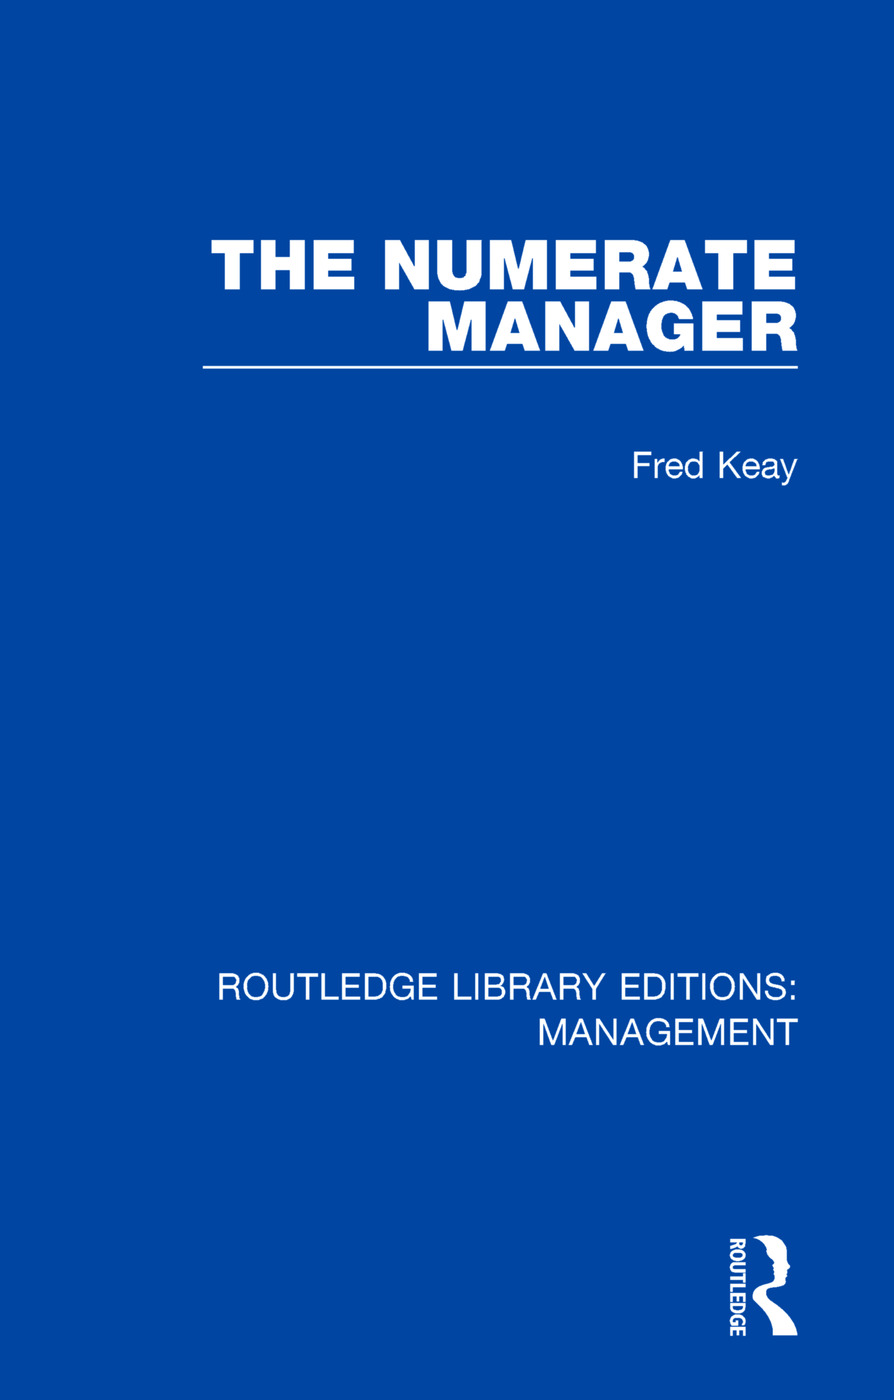 The Numerate Manager